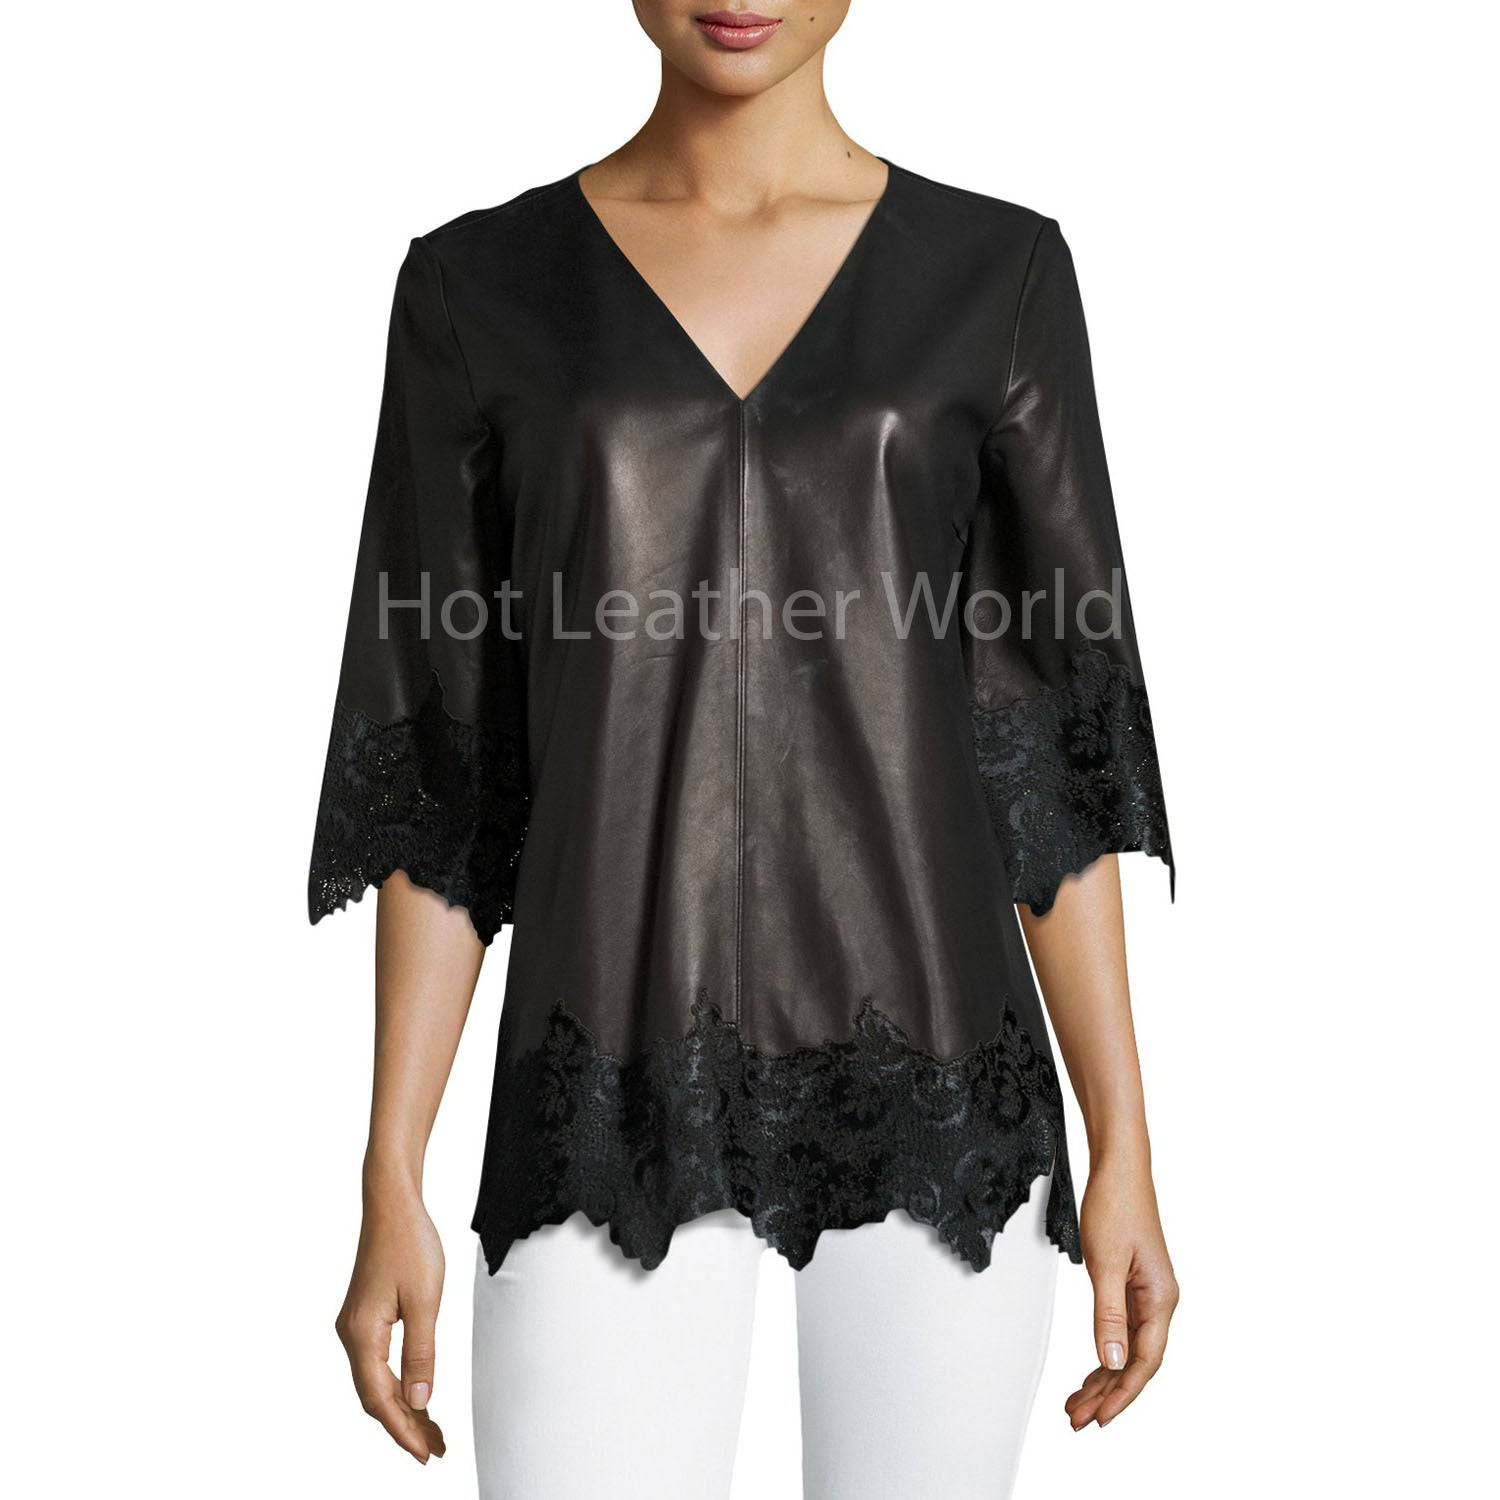 Half-Sleeve Lace Leather Top -  HOTLEATHERWORLD